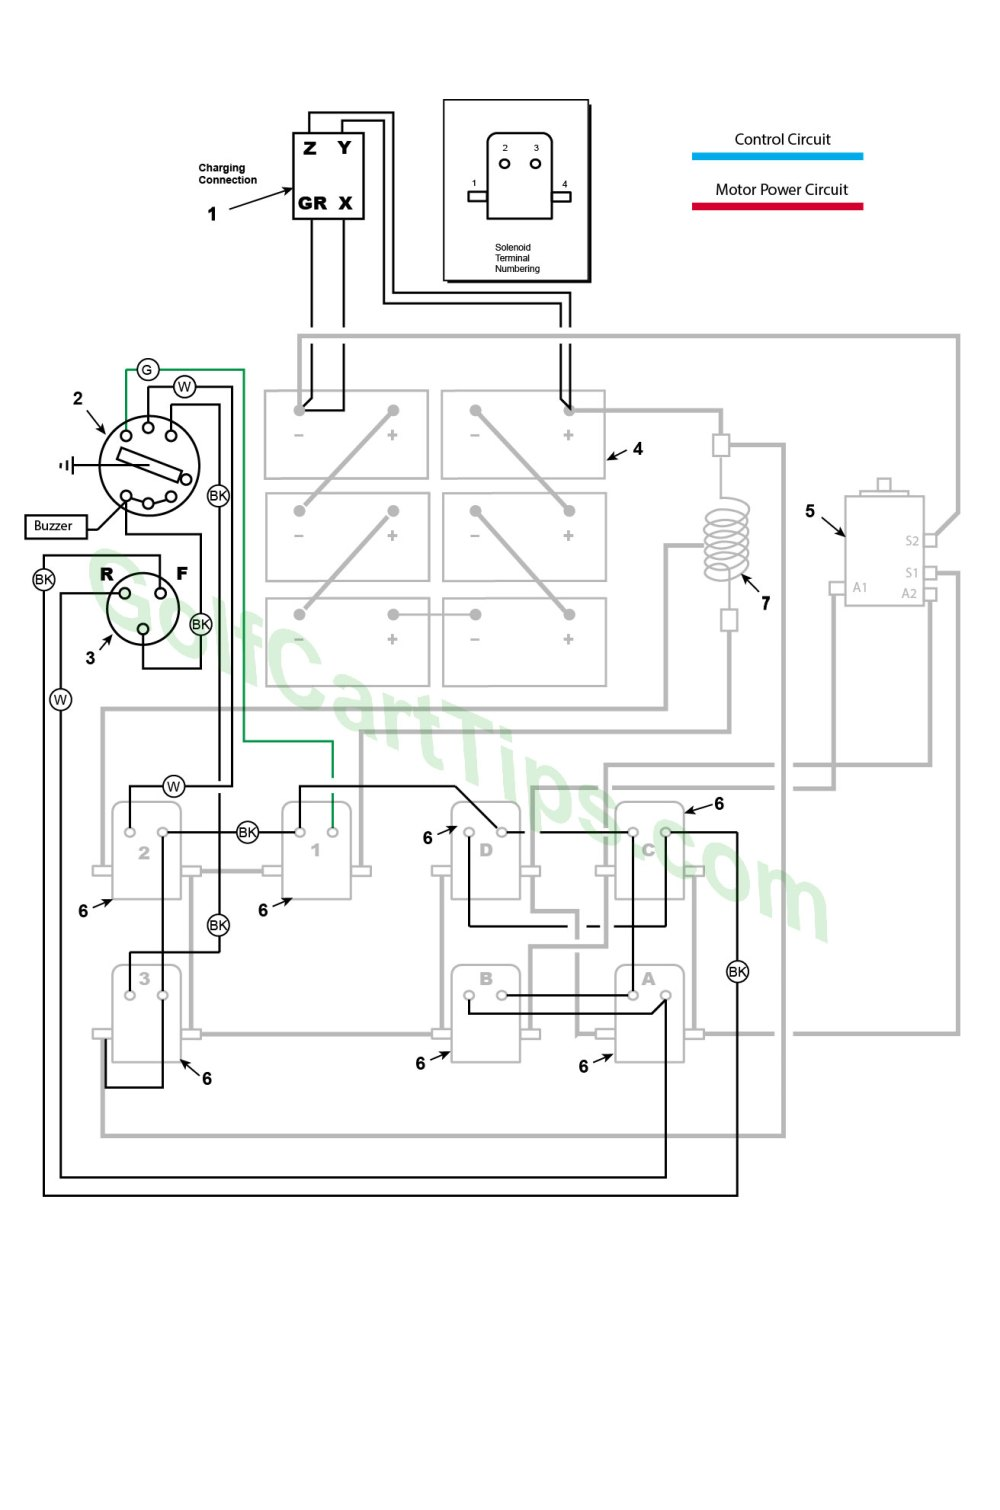 medium resolution of ezgo wiring diagrams model 300 late 1950 s accessories wiring diagram ezgo buzzer wiring diagram